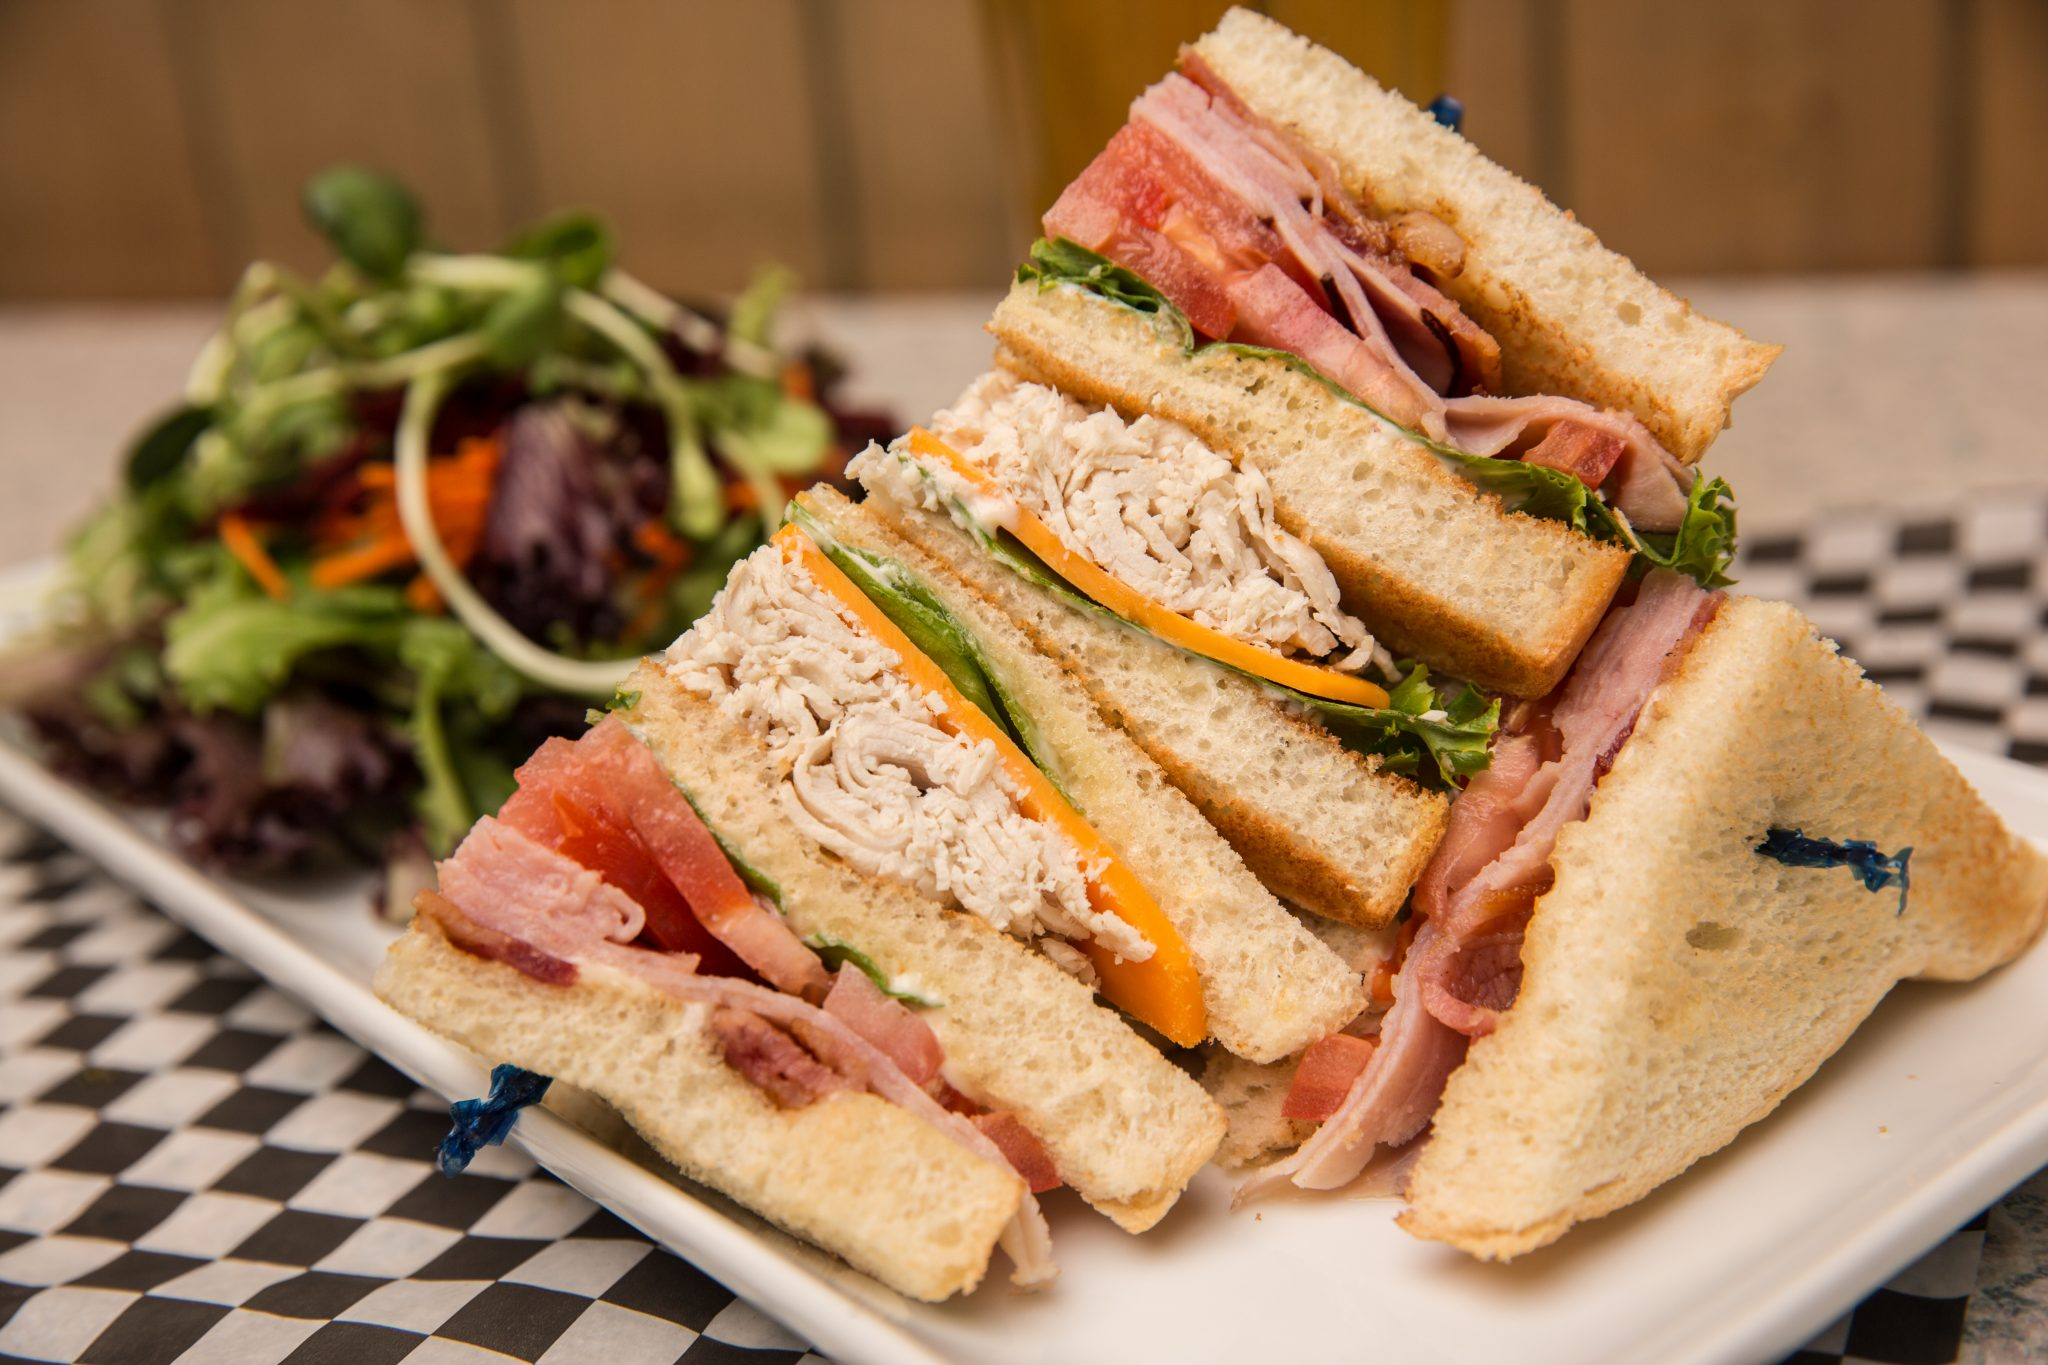 Traditional Club House - Flatbreads & Sandwiches | Brandt's Creek Pub Kelowna